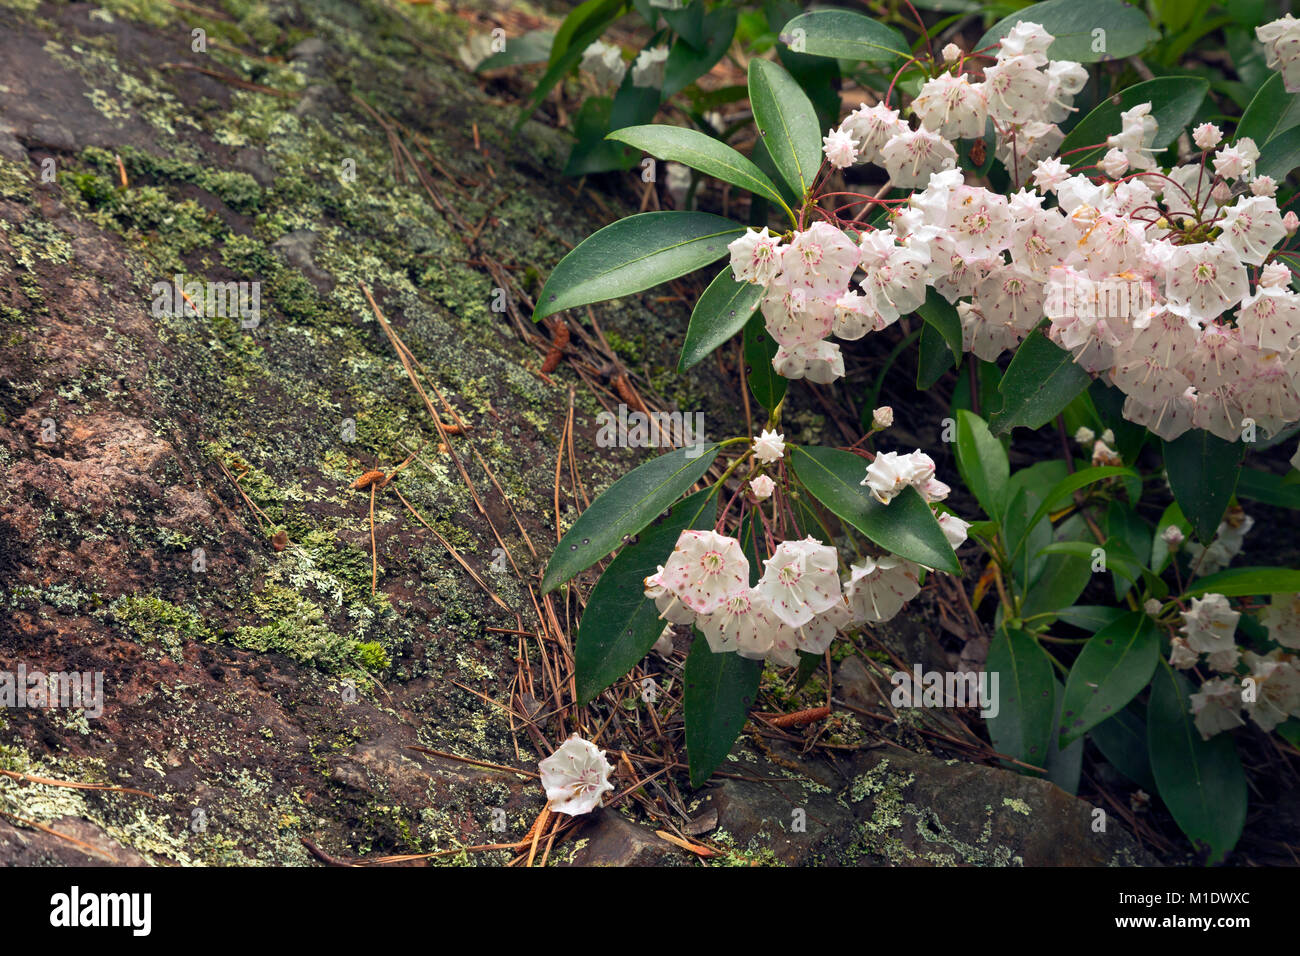 NORTH CAROLINA - Mountain laurel blooming along the edges of an exposed outcropping of biotite granite on the side - Stock Image